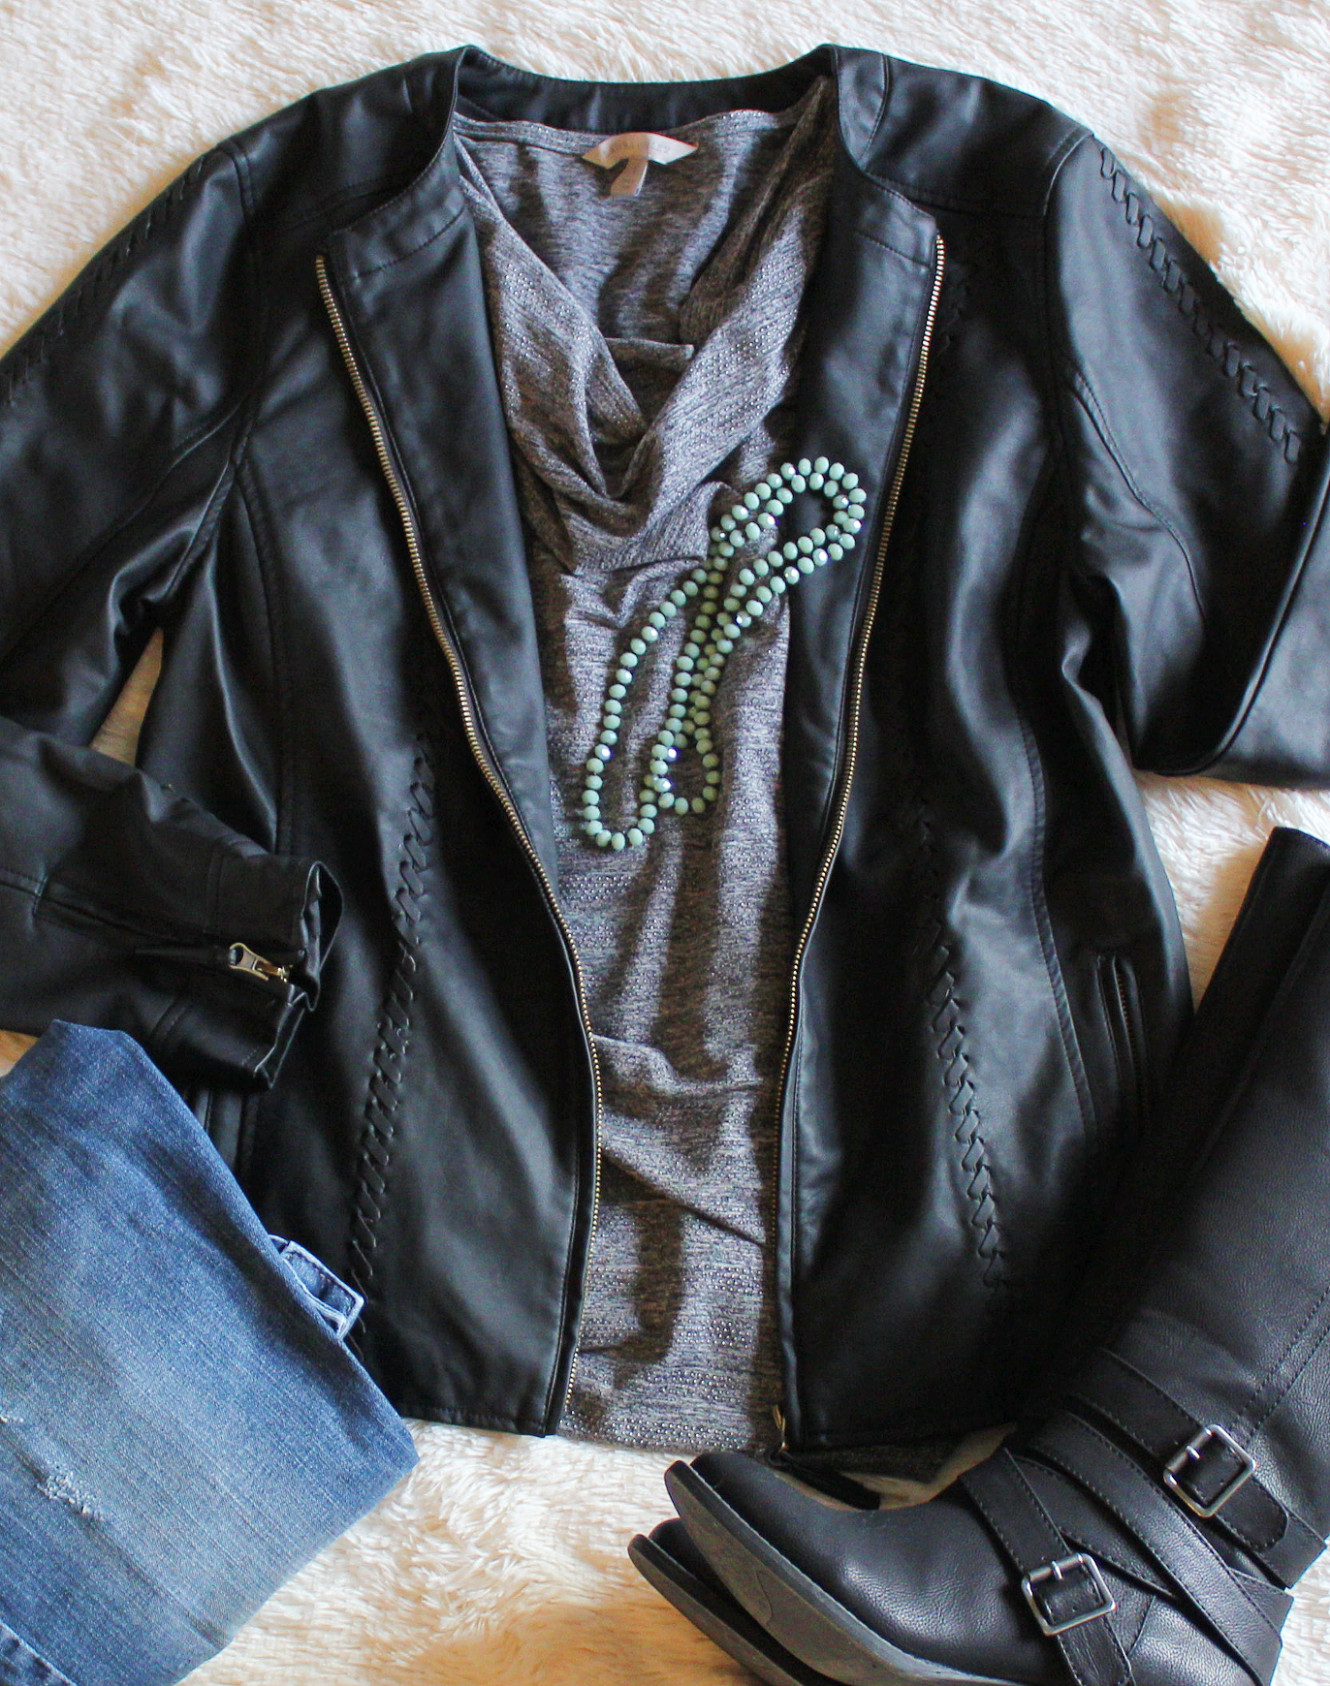 A Winter outfit featruing a faux leather jacket and green beaded necklace. Fashion/Jewelry/Winter Outfit